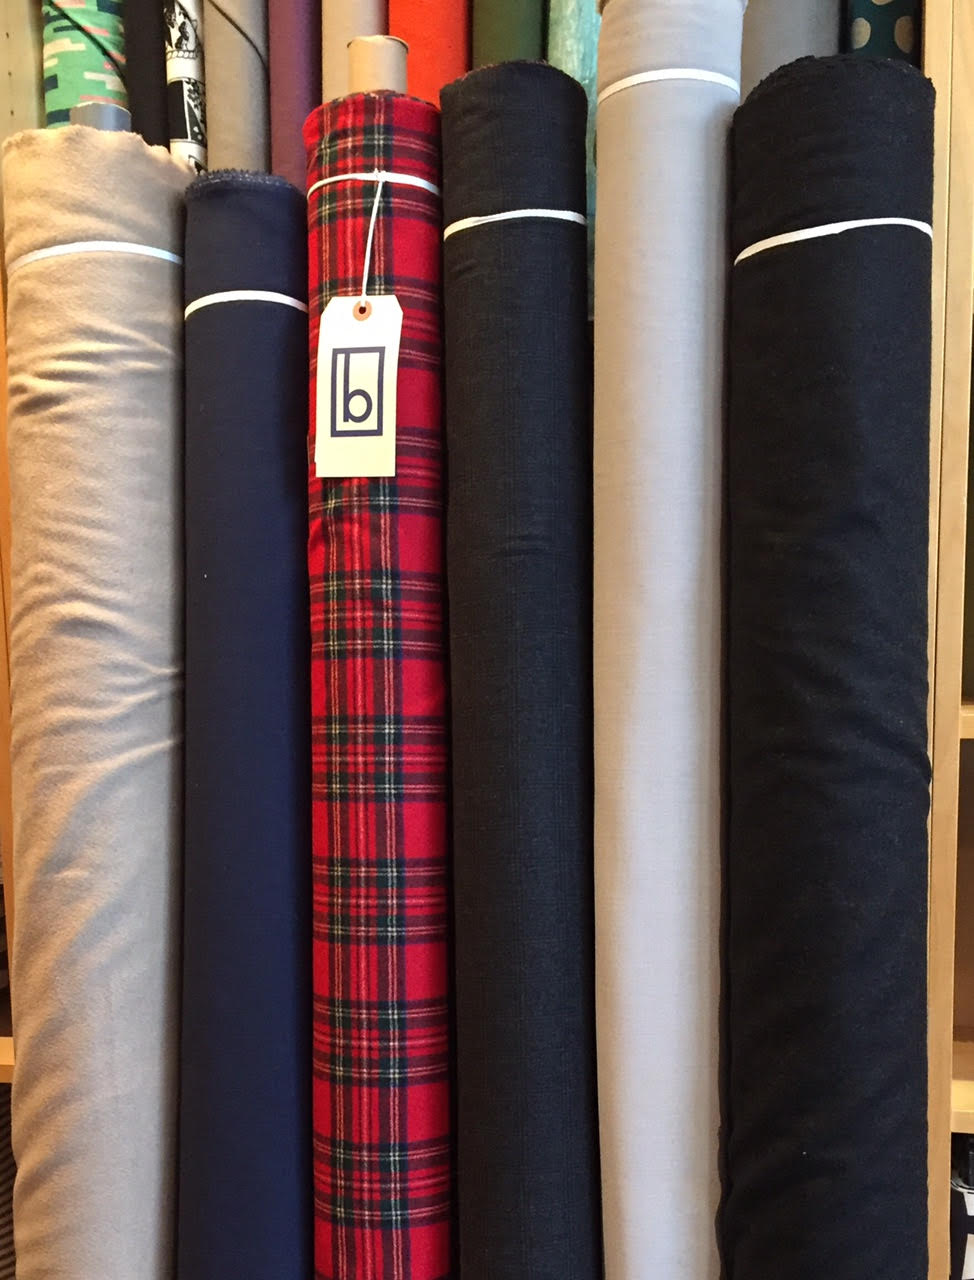 New wools! Left to right - camel Coating, Navy gauze, plaid coating, charcoal plaid suiting, grey gauze, and solid charcoal coating